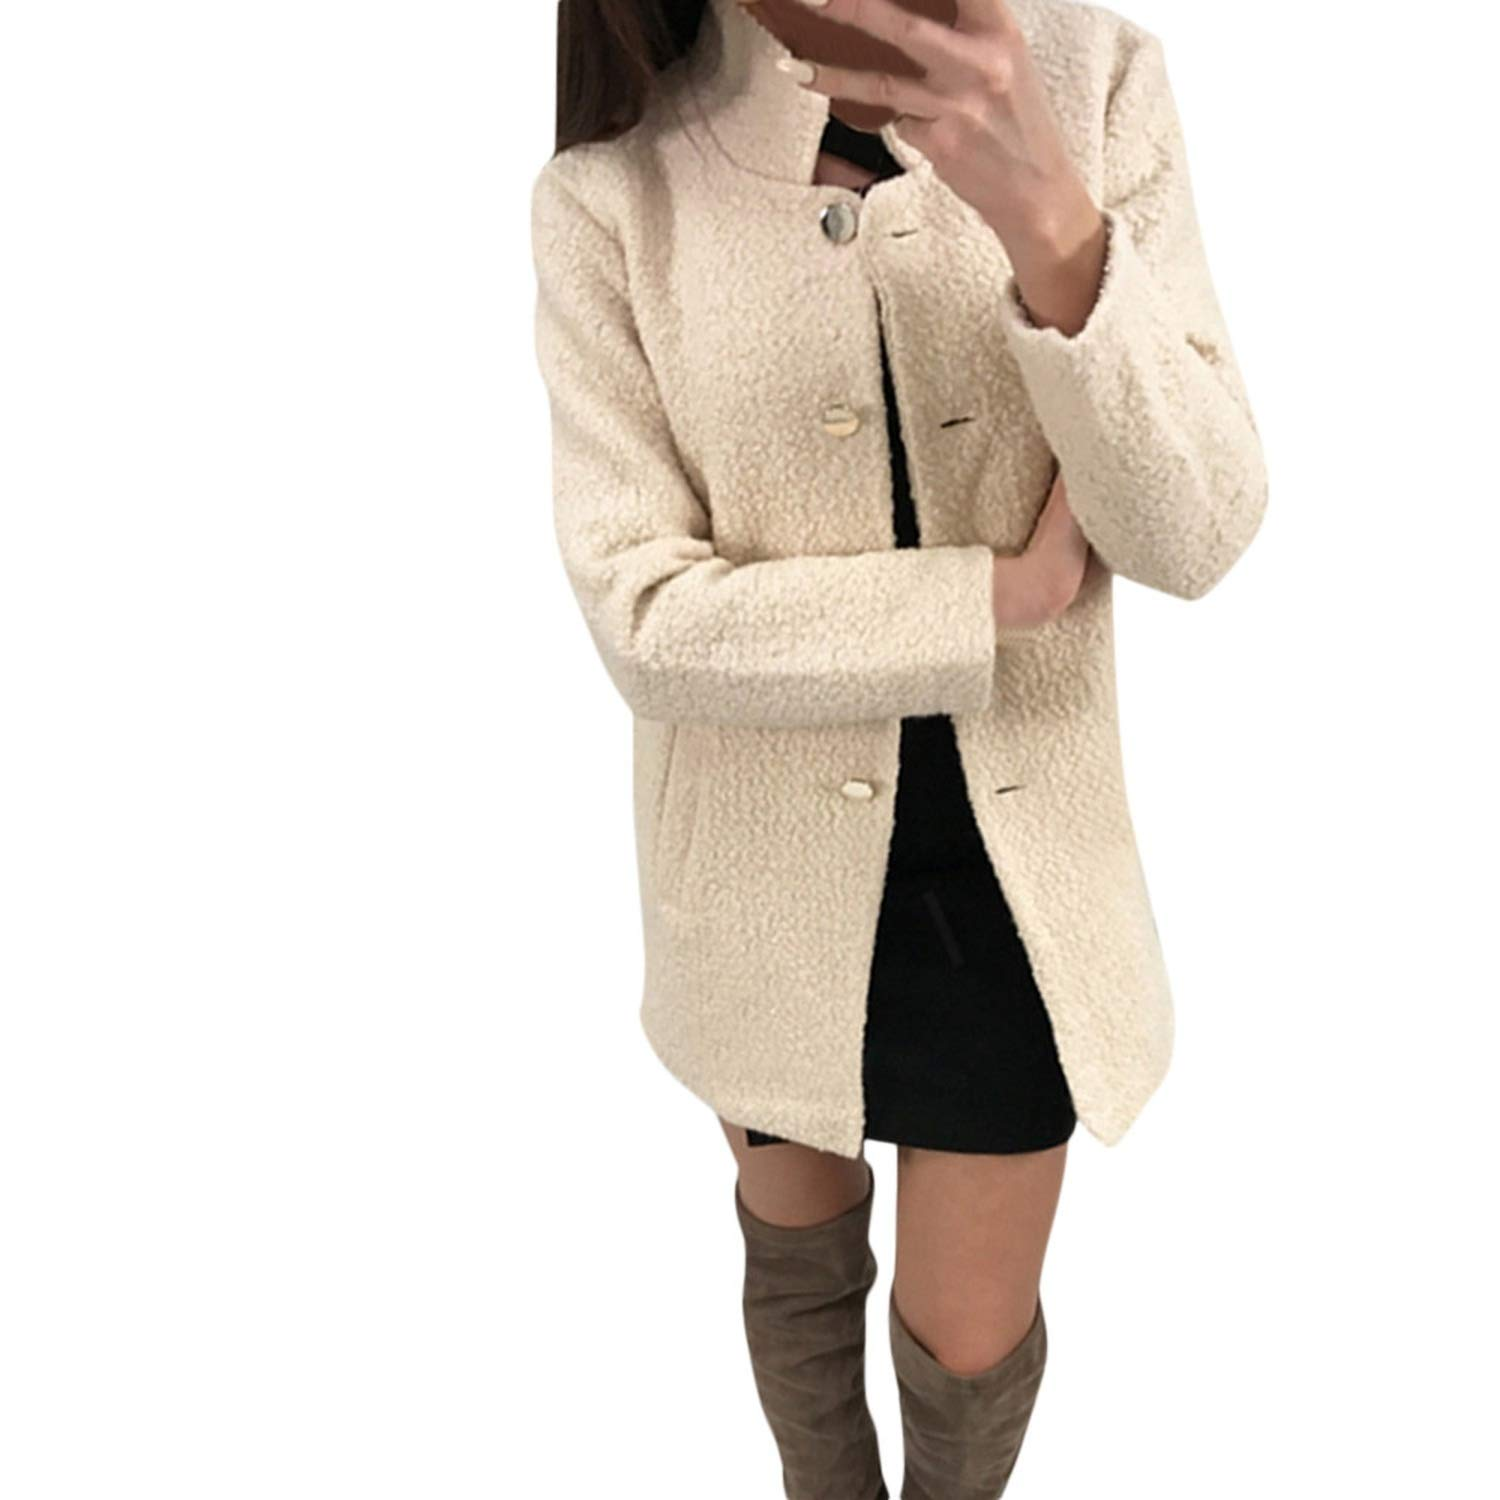 Amazon.com: Sexy Stores 2019 Winter Coat Women Solid Single Breasted Notched Fluffy Pocket Jackets Outwear Coat: Clothing